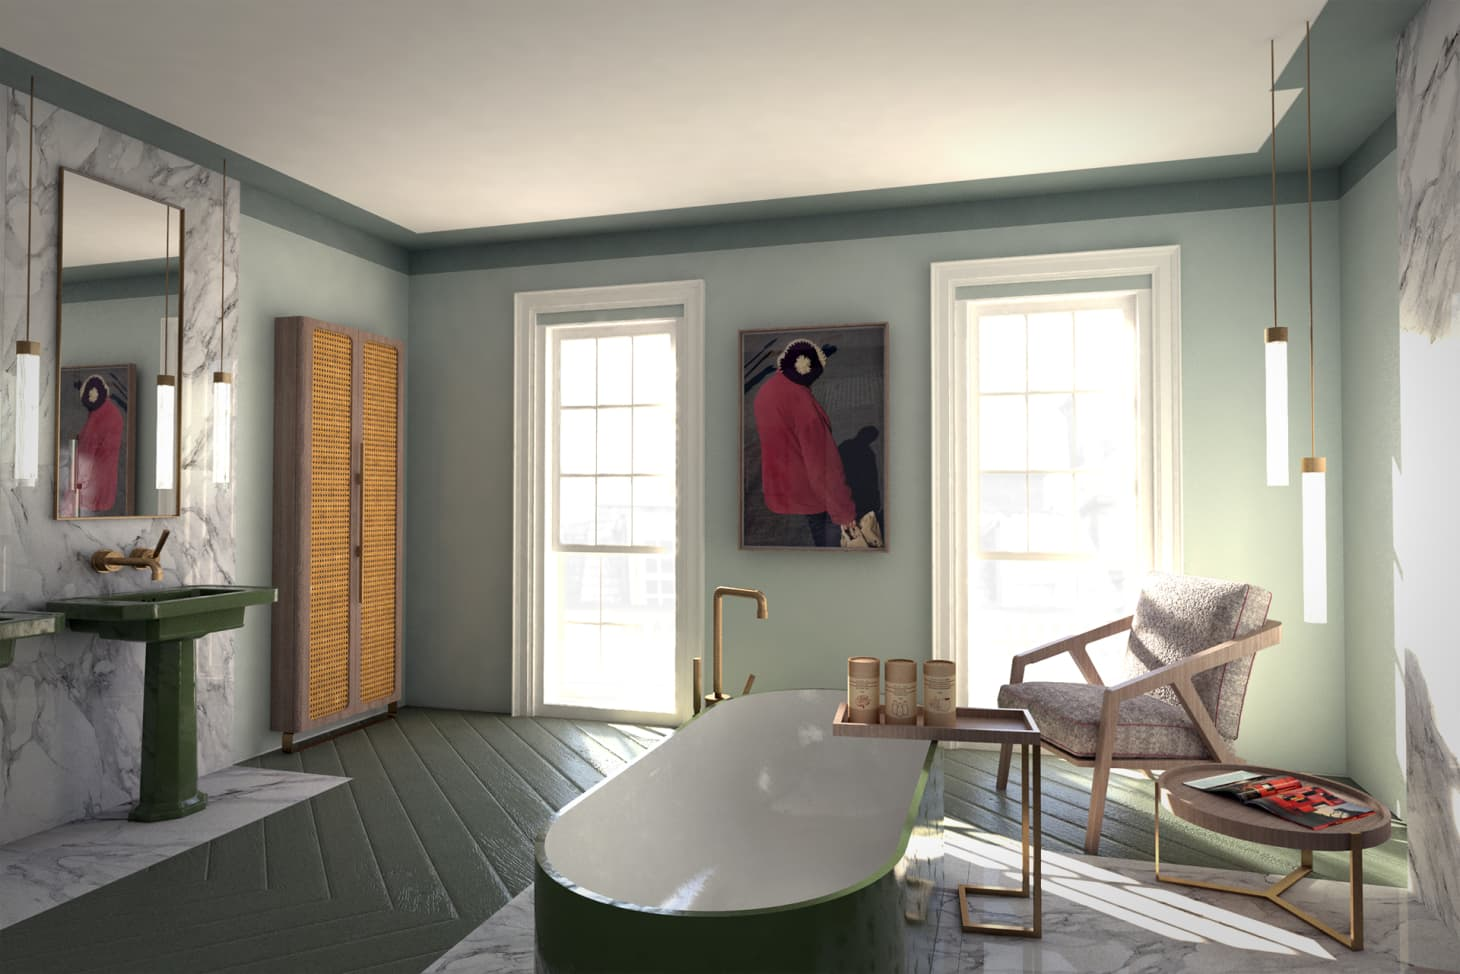 Avocado Green Bathroom Fixtures - Modern Renovation ...